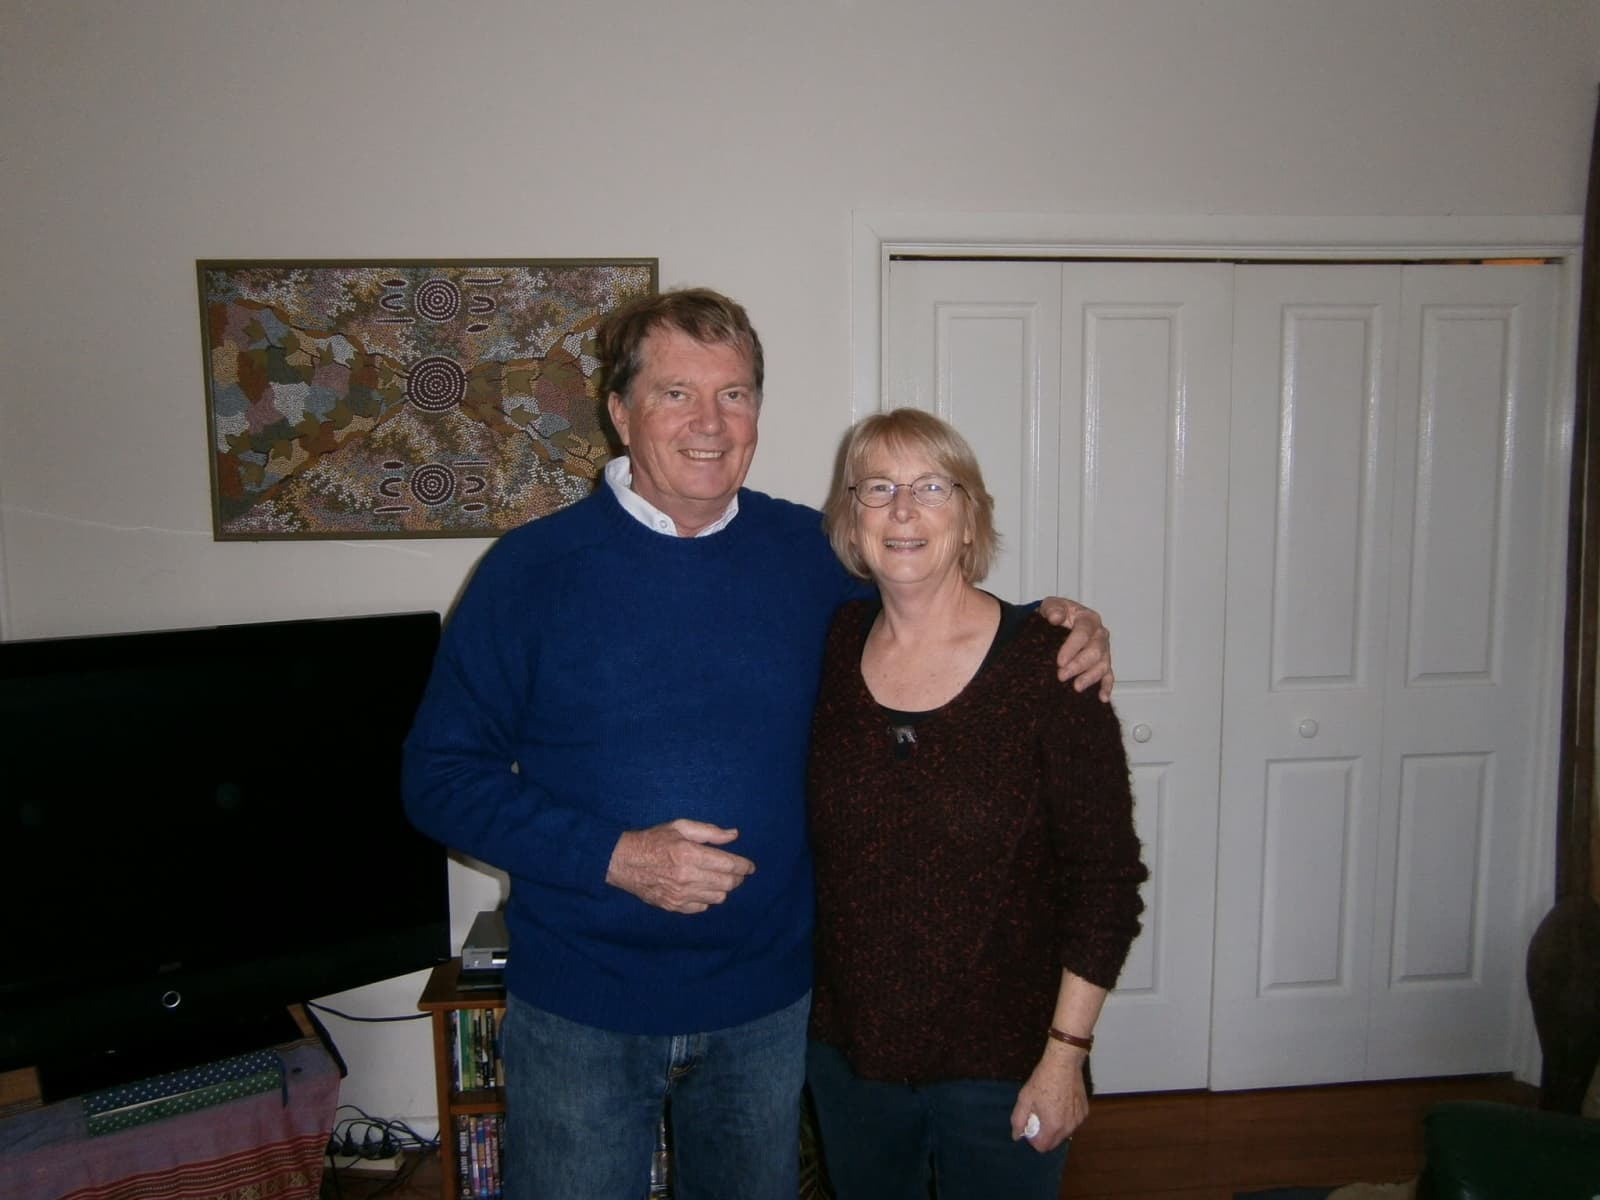 Graham & Helen from Armidale, New South Wales, Australia